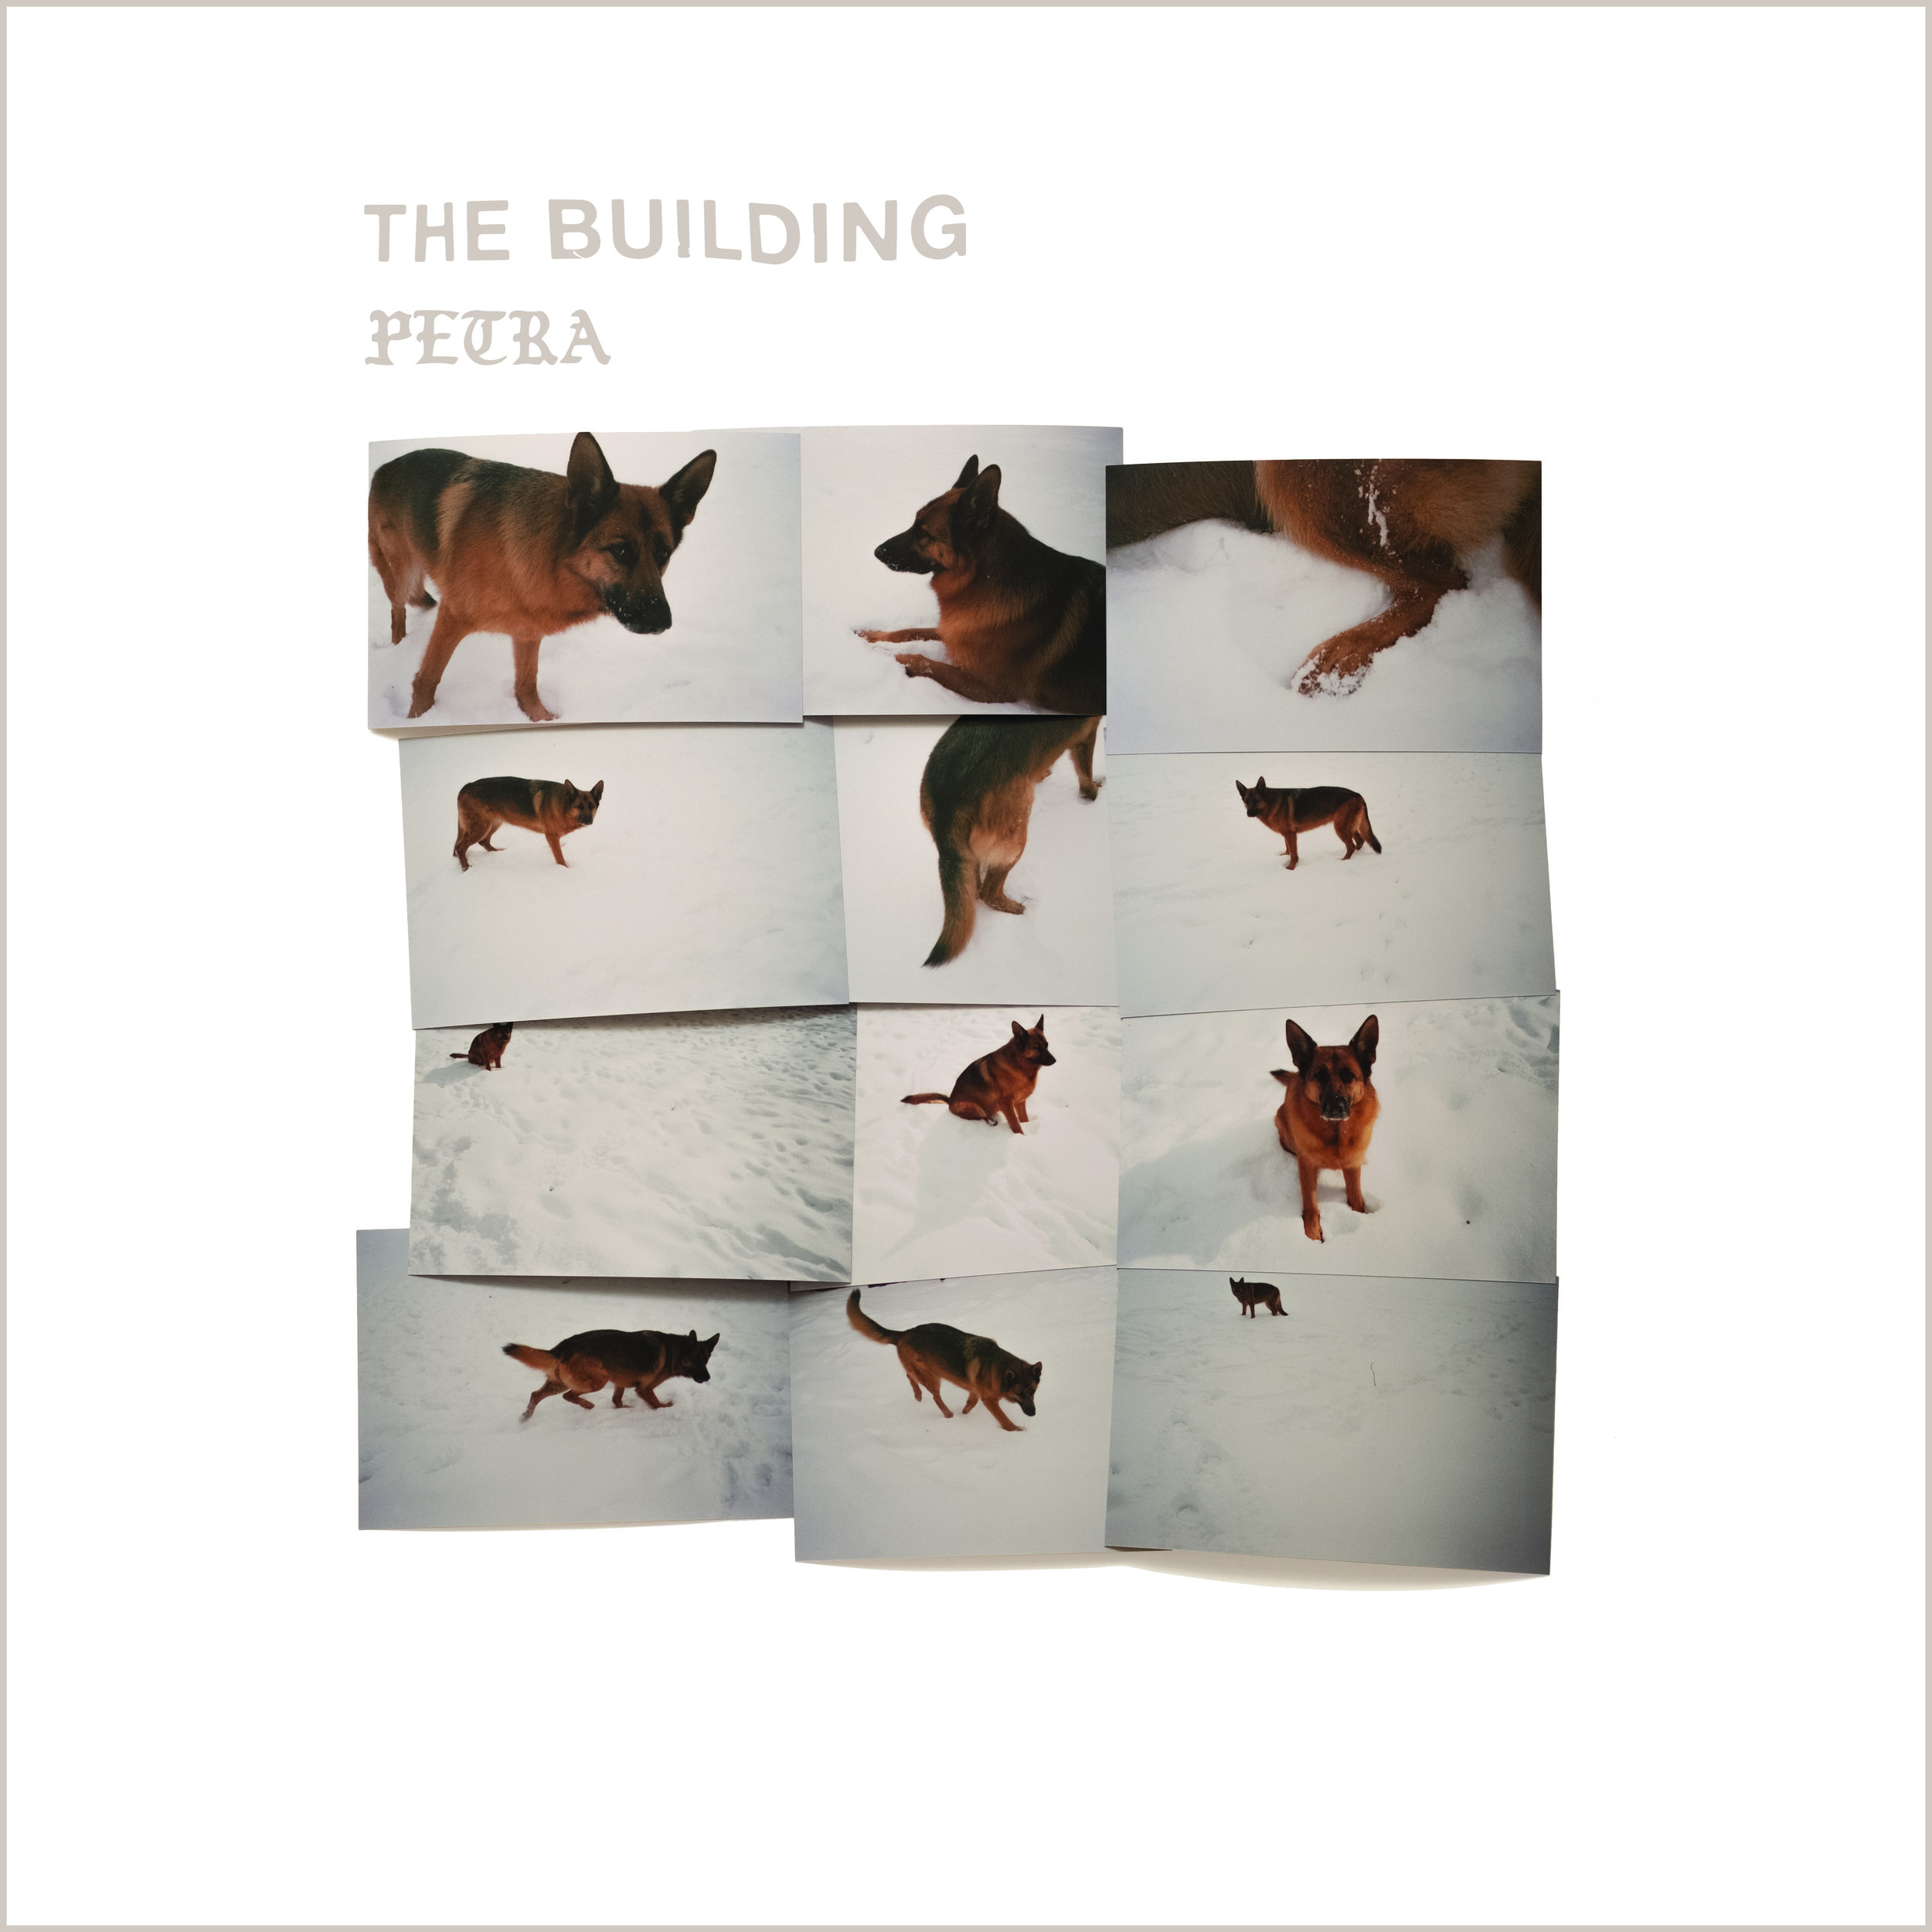 VINYL - DIGITAL - THE BUILDING - PETRA - 20191. Transformed2. All Things New3. Purifier4. Warning5. Life Half Lived6. When I Think Of You7. Never Understand8. Never Was Alone9. Peace's Eternal Truth Renews All